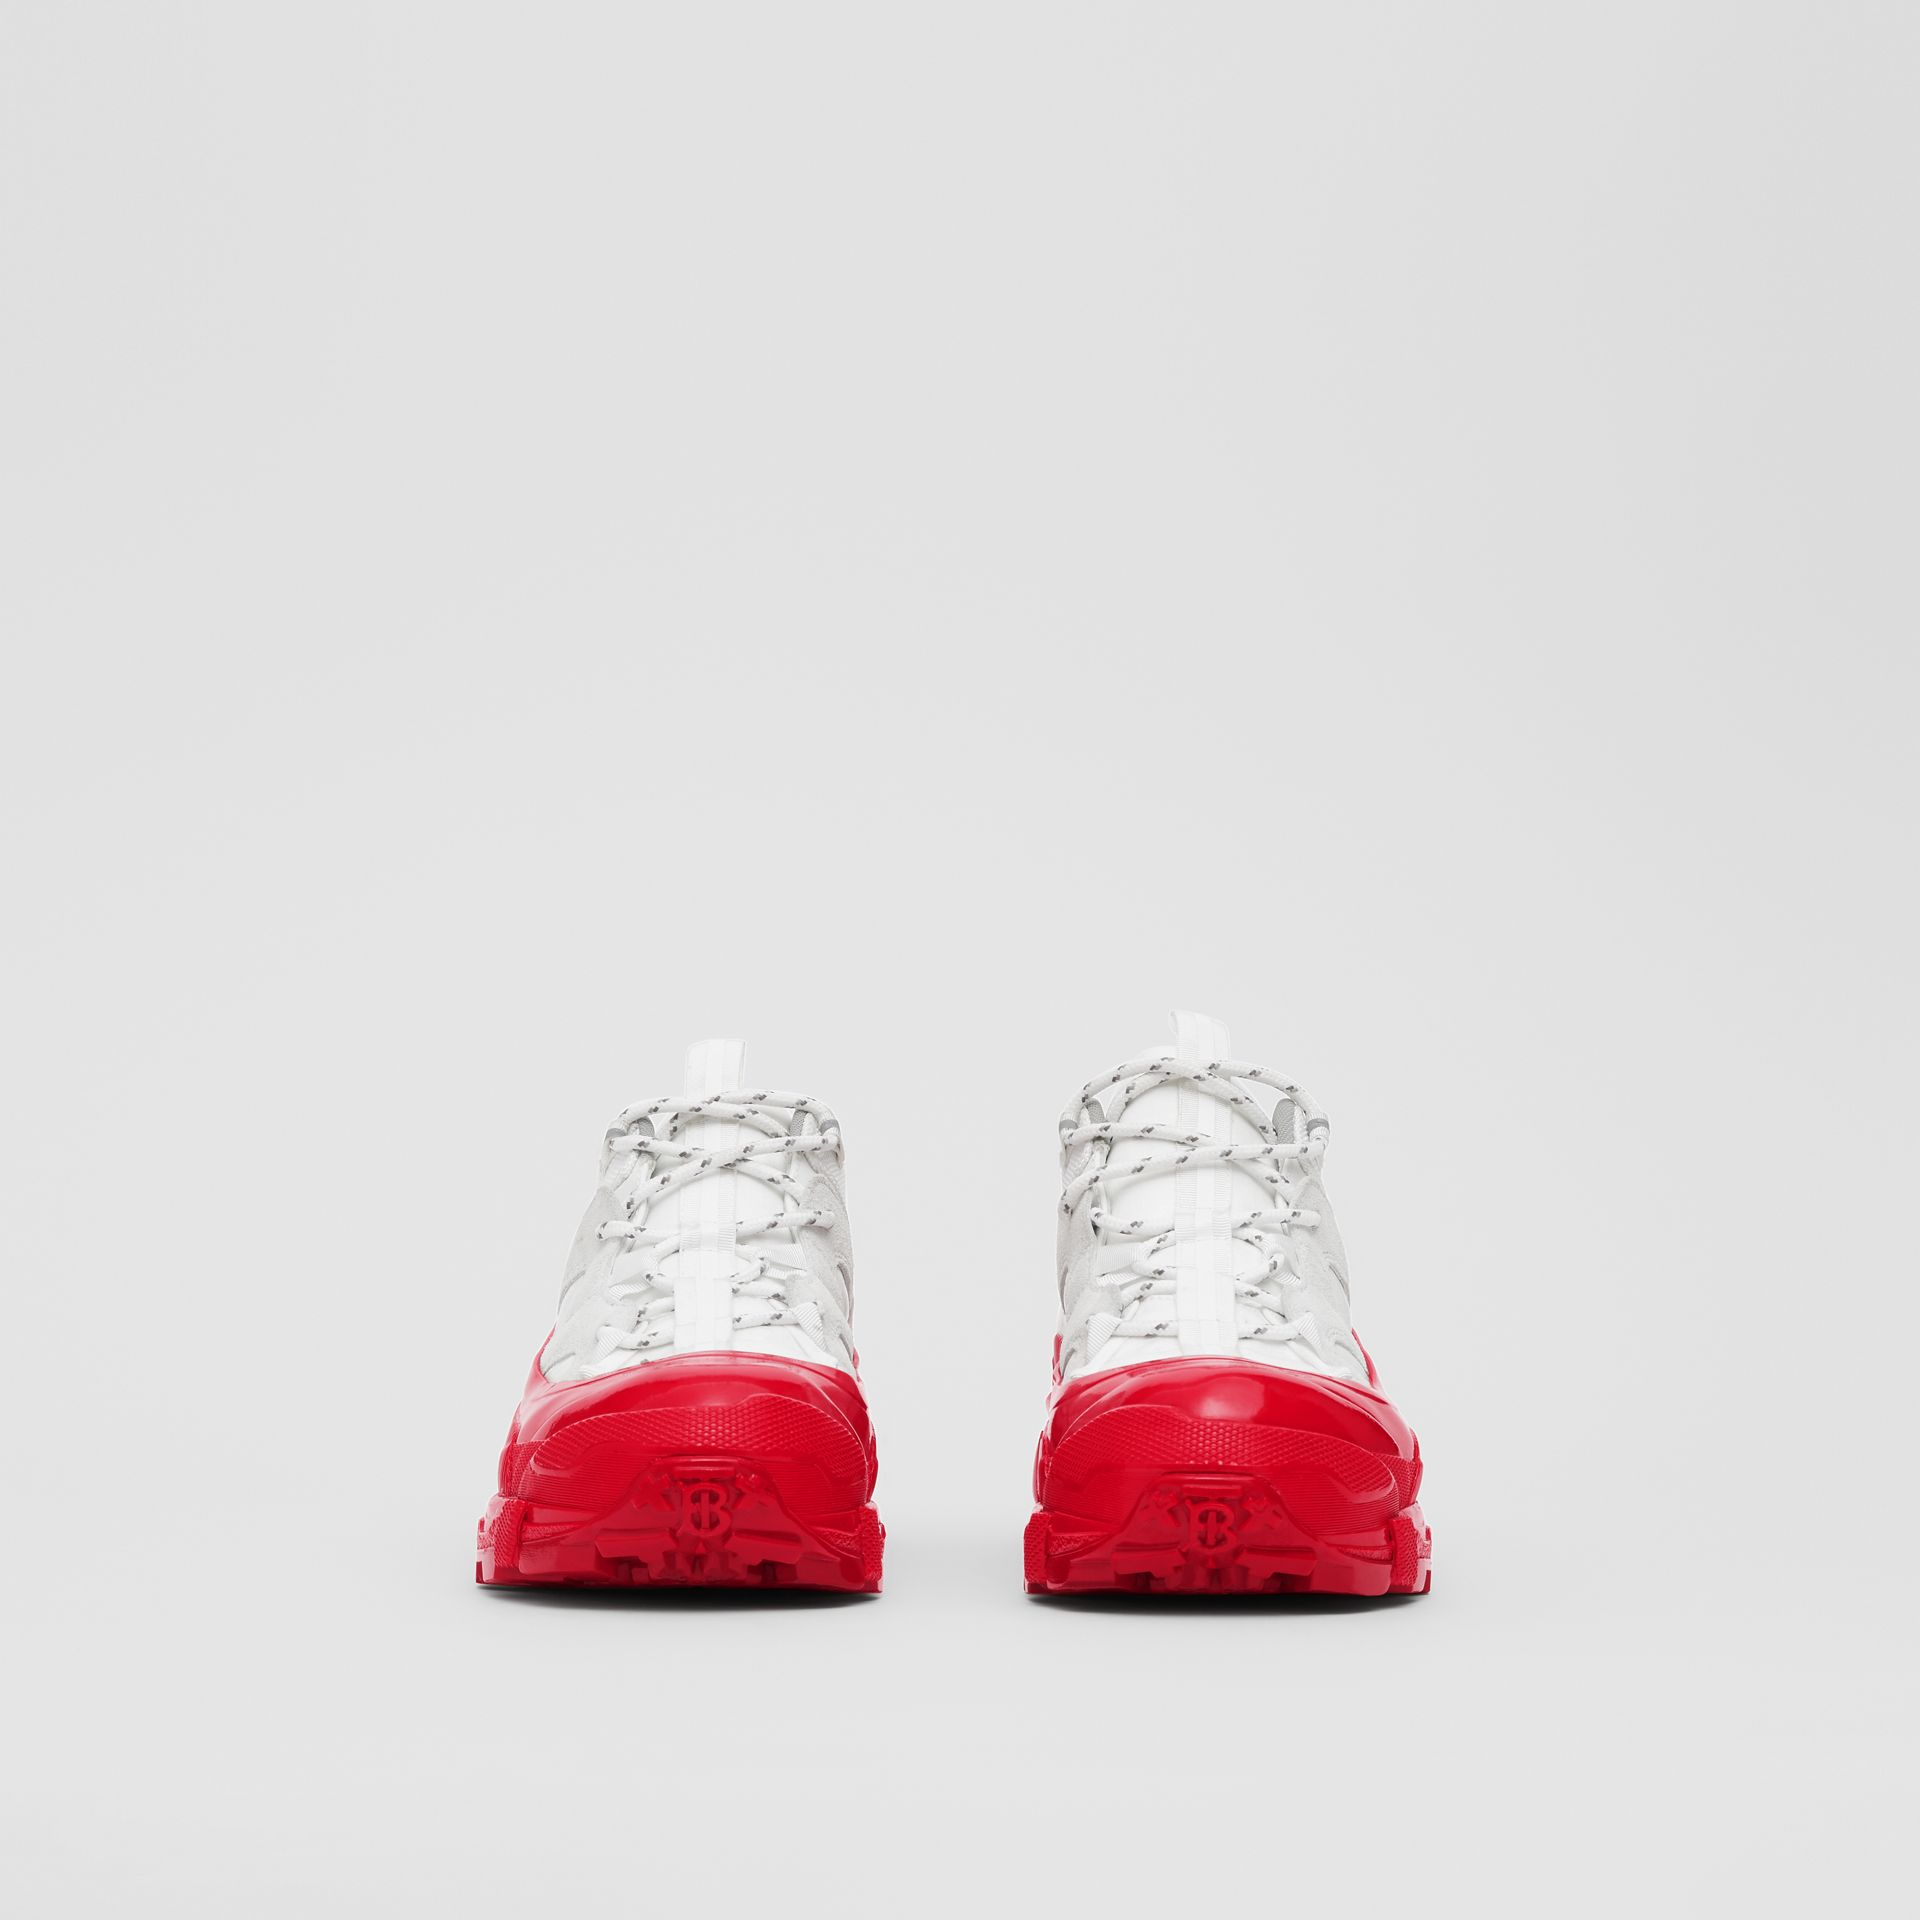 Nylon and Suede Arthur Sneakers in White/red - Women | Burberry United States - gallery image 3